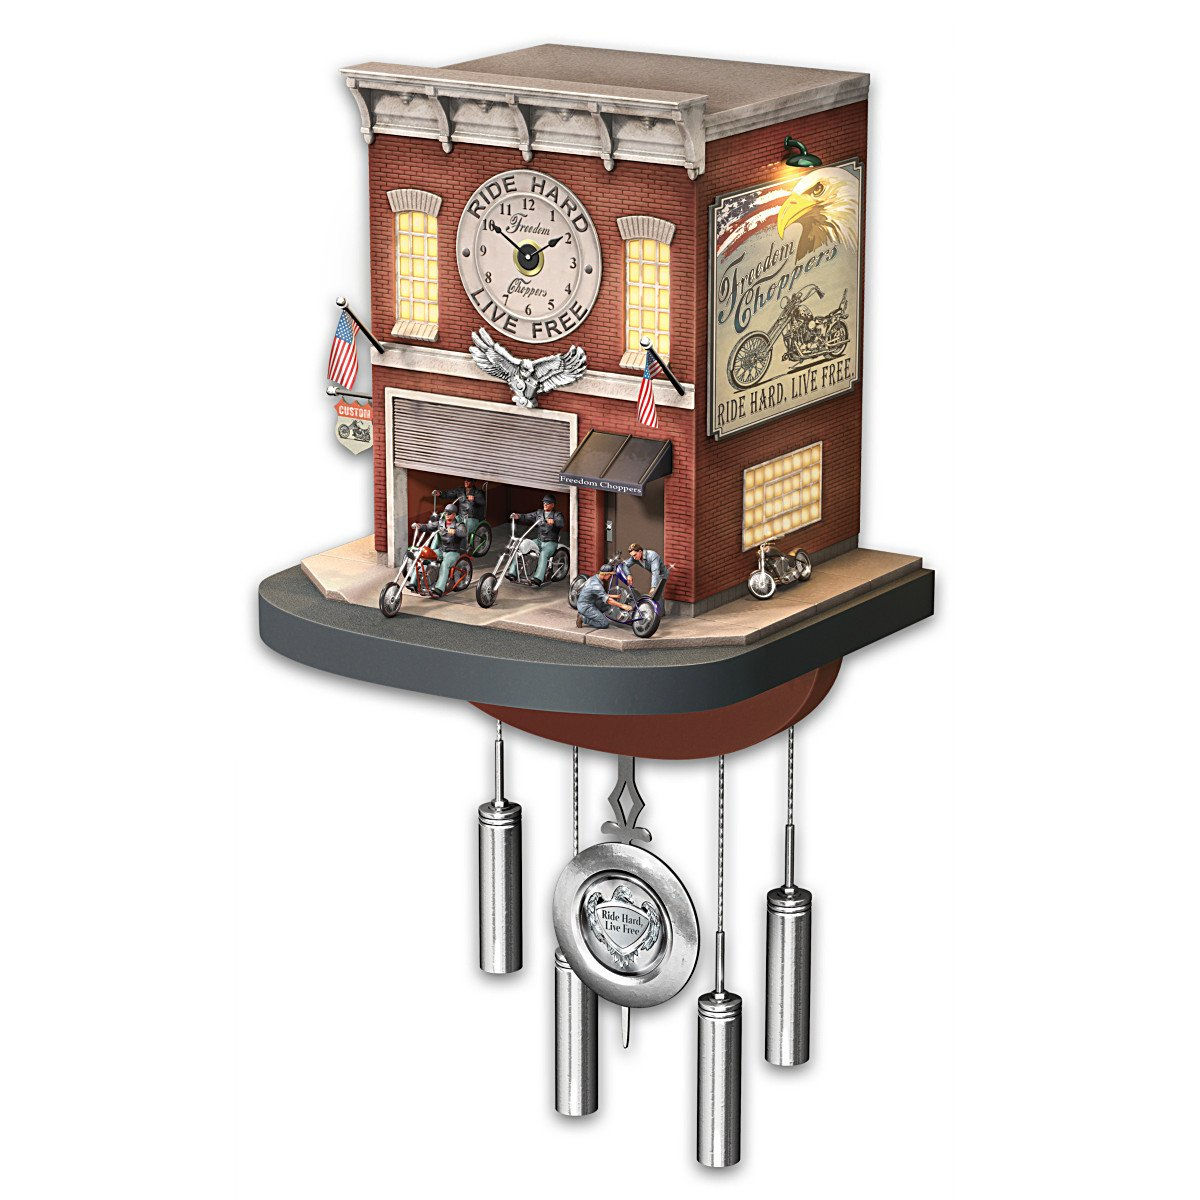 Cuckoo Clock With Lights, Sound, Motion: Freedom Choppers Motorcycle Garage - By The Bradford Exchange by Bradford Exchange